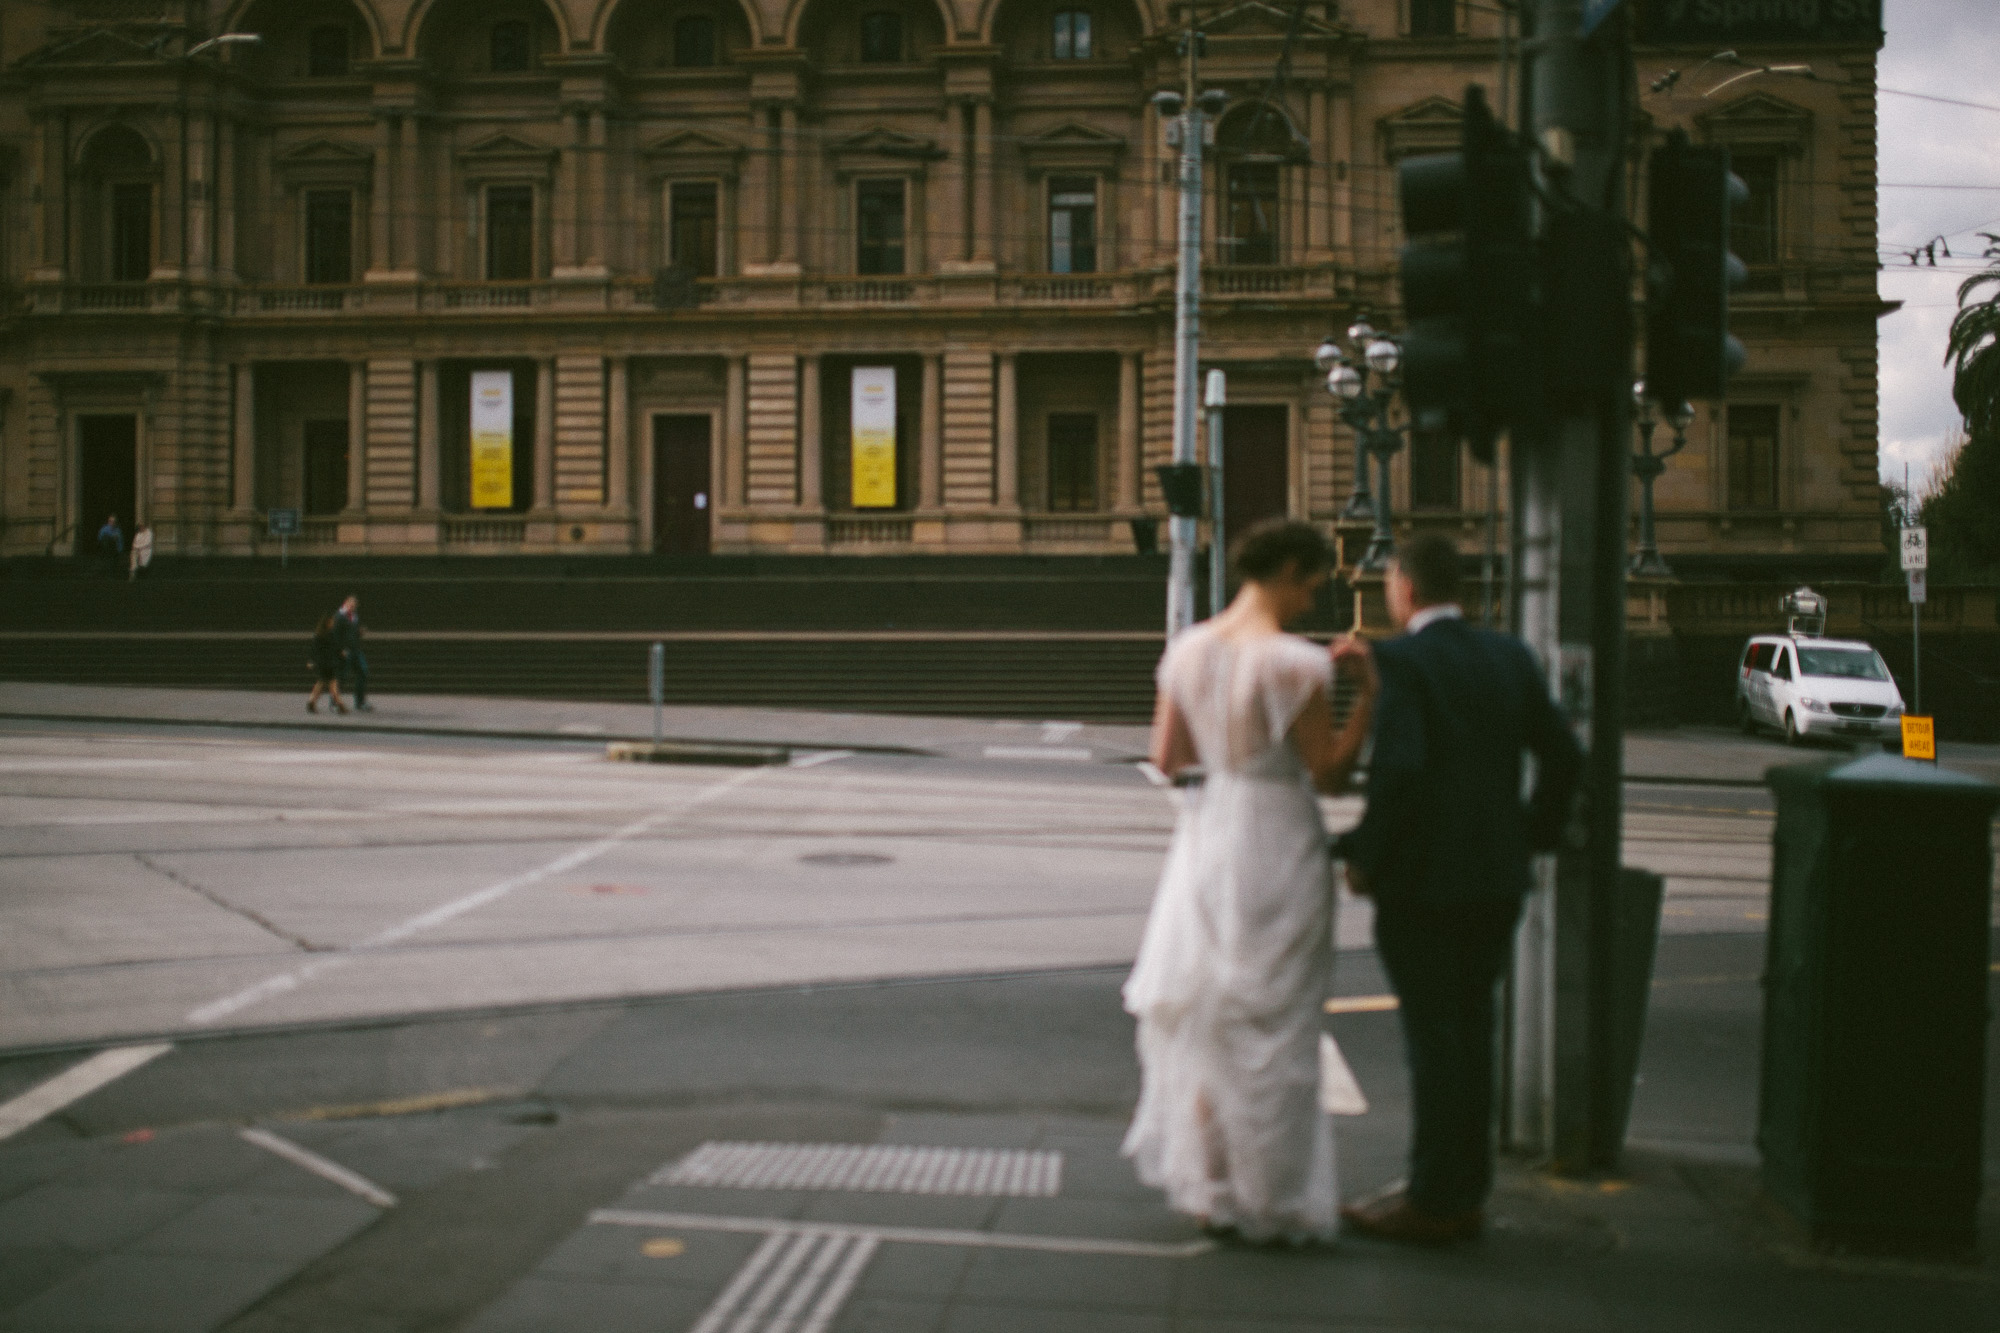 Jason-Charlotte-Melbourne-Quirky-Urban-Alternative-Wedding-Photography-15